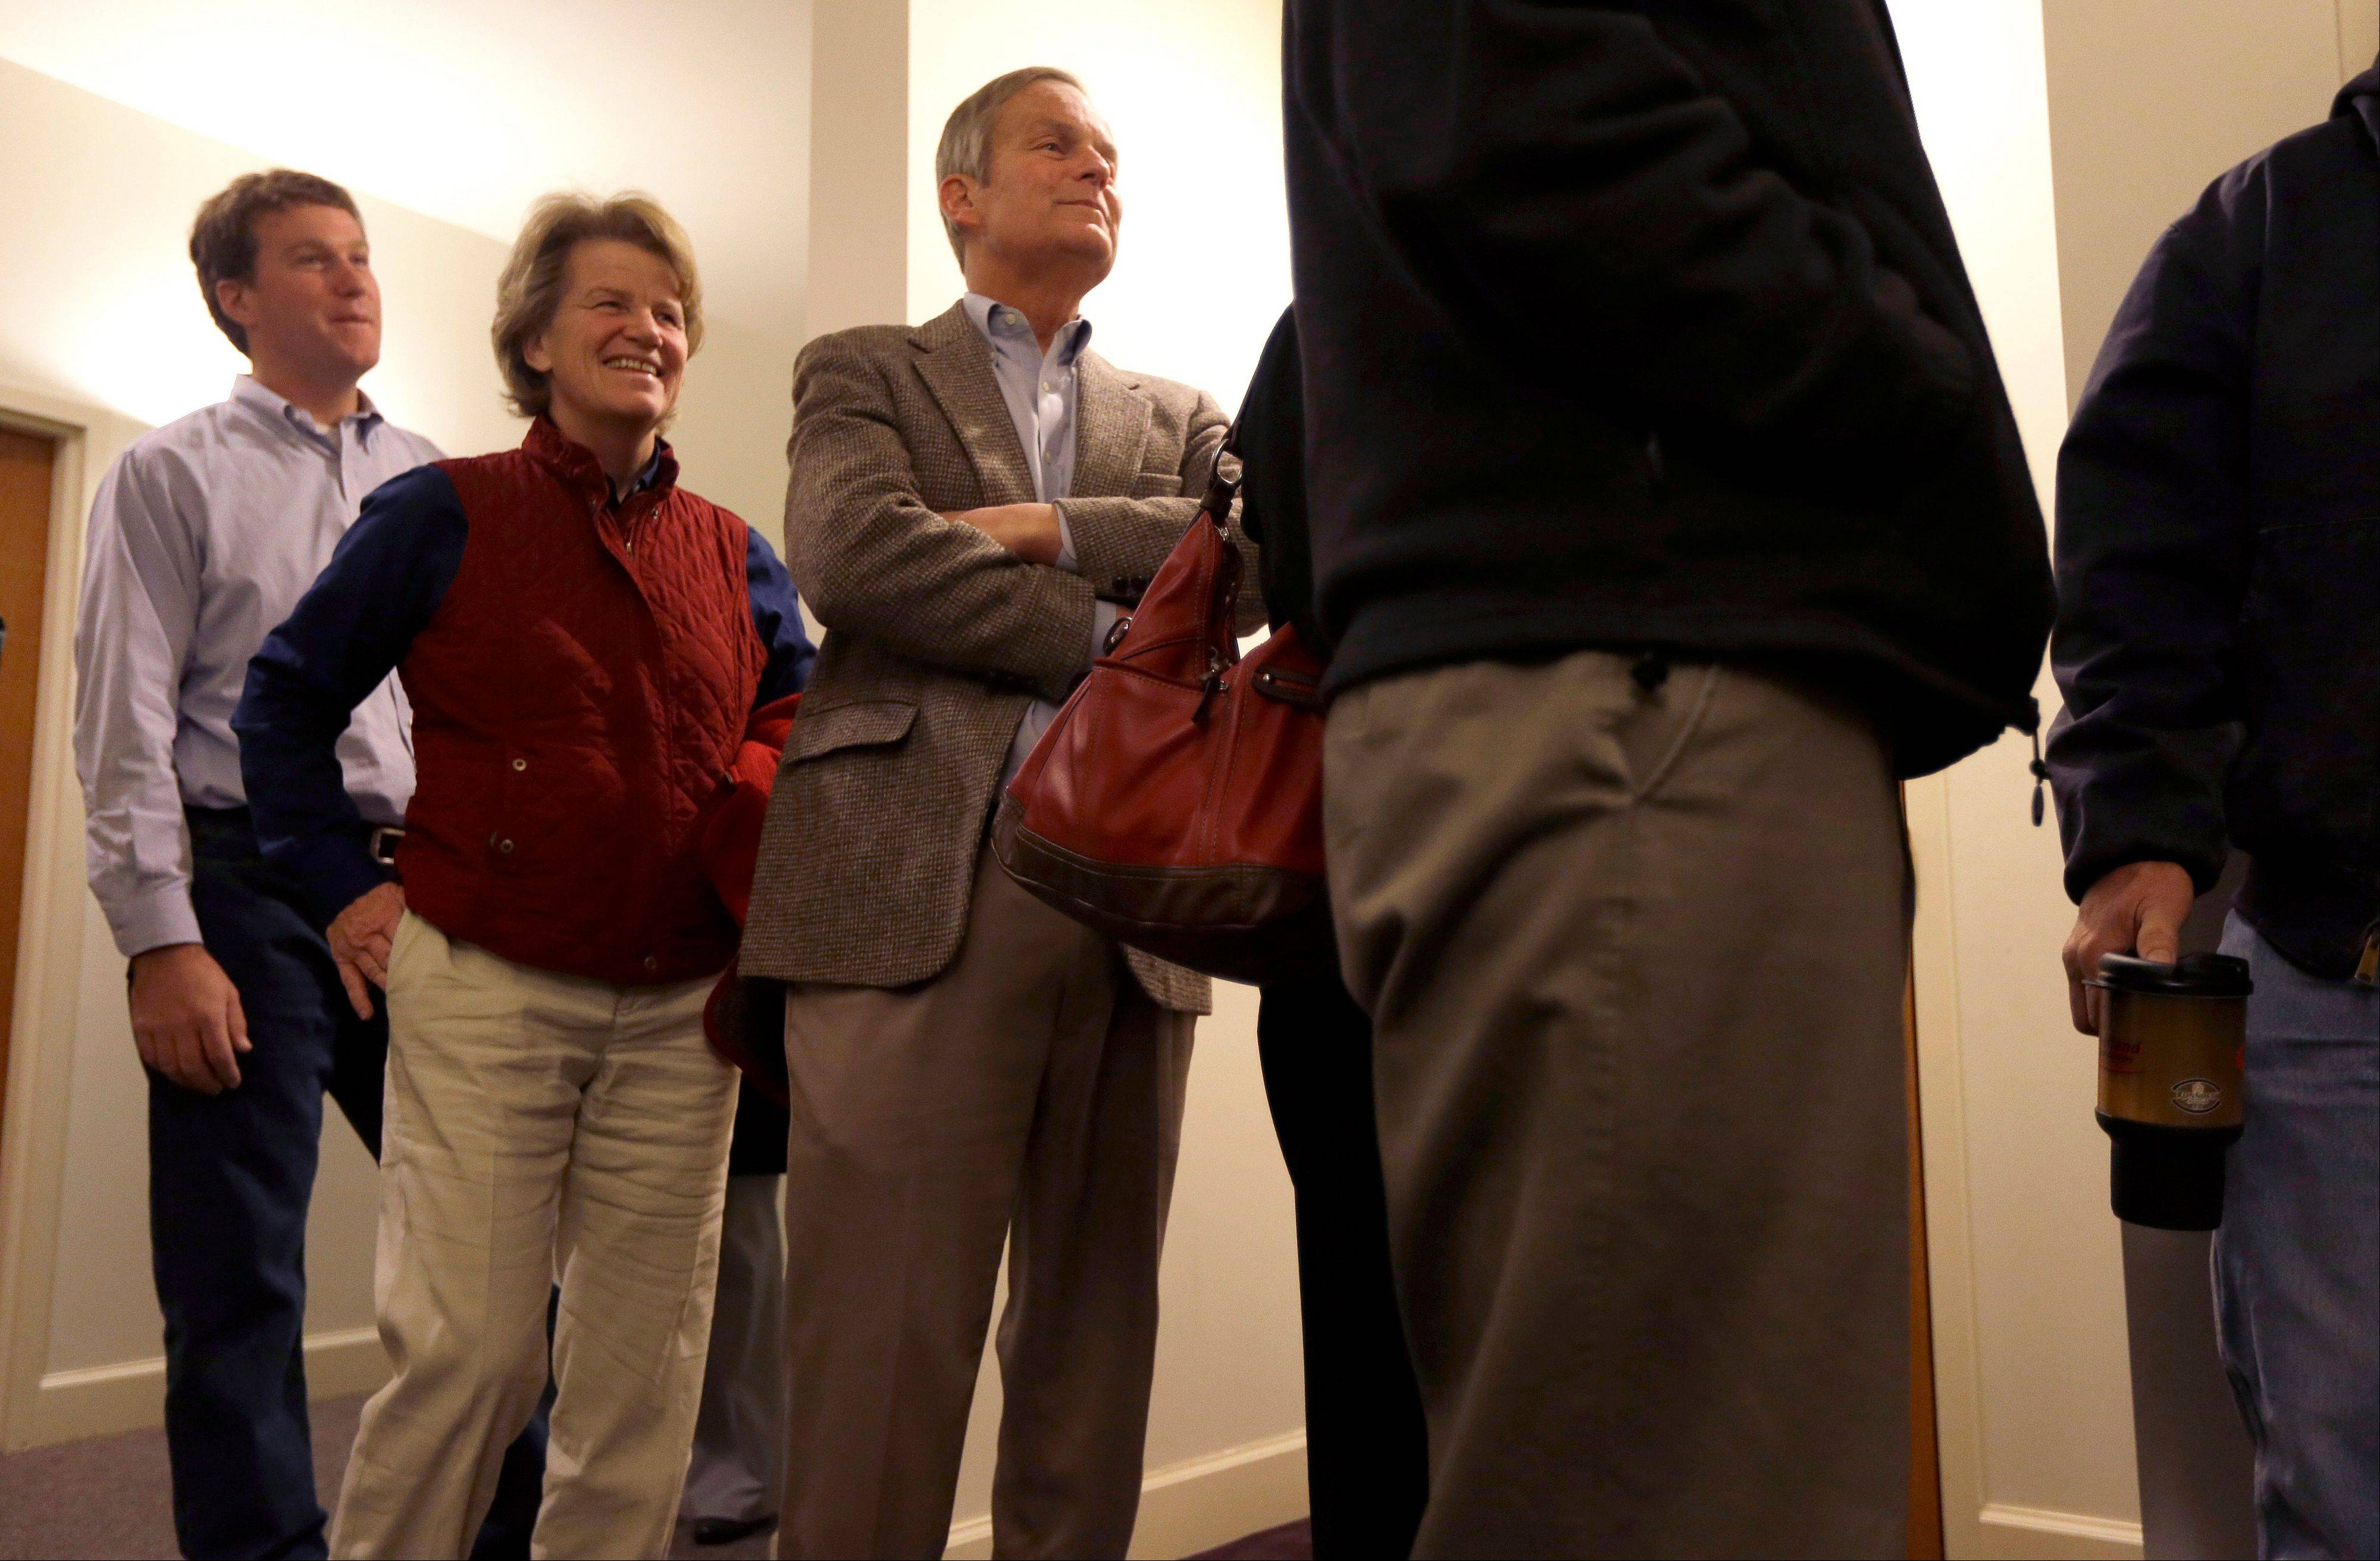 Missouri U.S. Senate candidate, Rep. Todd Akin, R-Mo., center, waits in line to vote along with his wife Lulli, center left,, and son Wynn, left, at their polling place, Star Bridge Christian Center, Tuesday, Nov. 6, 2012, in Wildwood, Mo. Akin is running against incumbent Sen. Claire McCaskill, D-Mo.